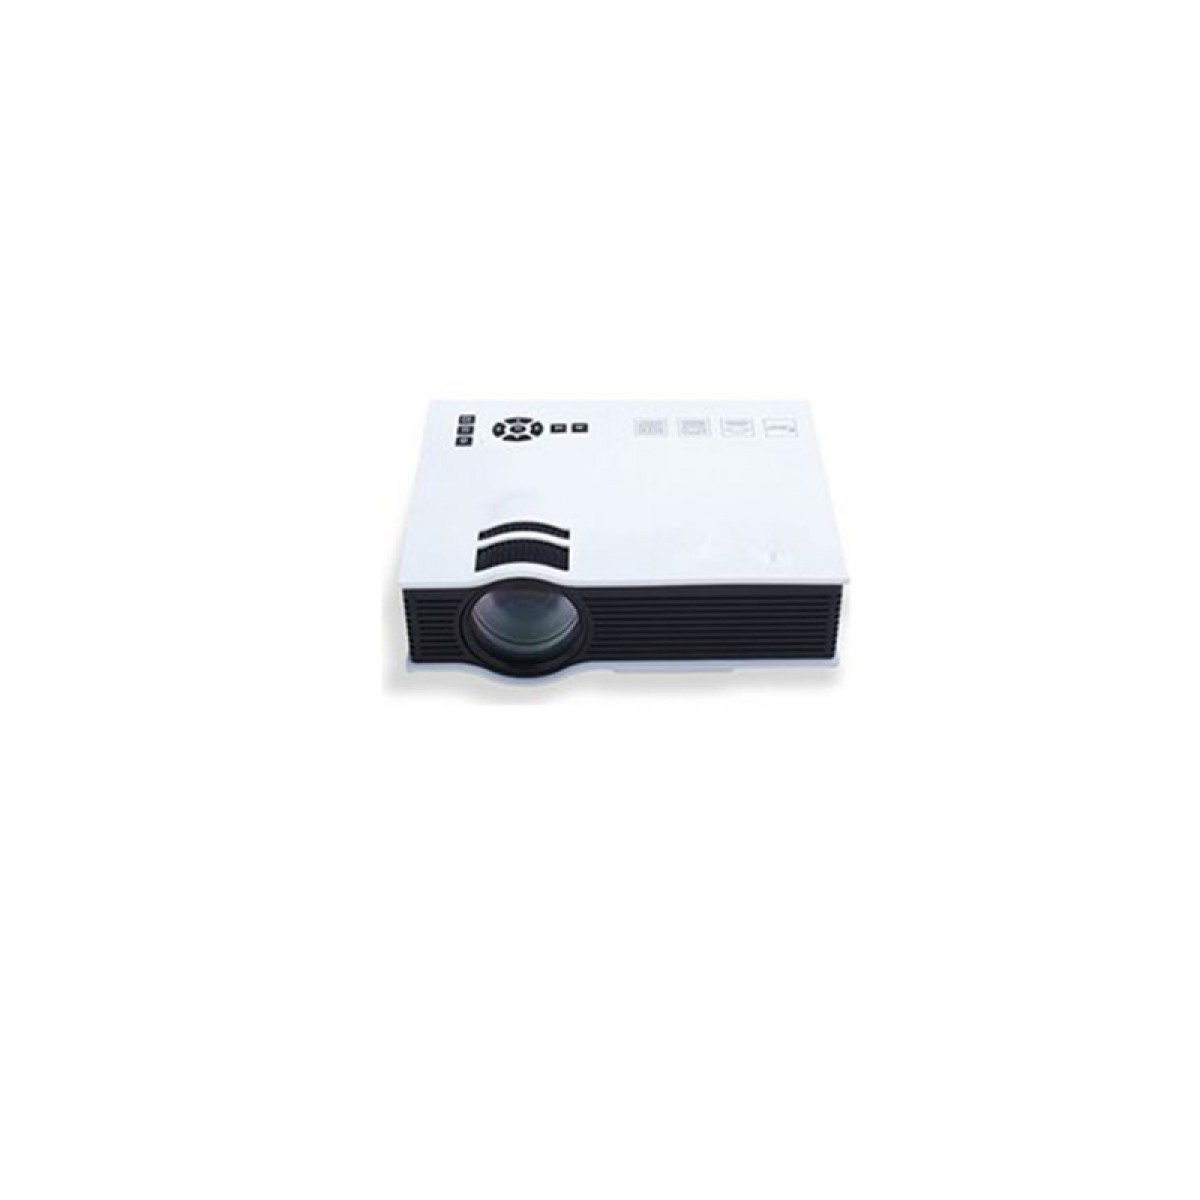 Mini LED Projector UC40 PLUS 800 Lumens - VGA / HDMI - 800x480p